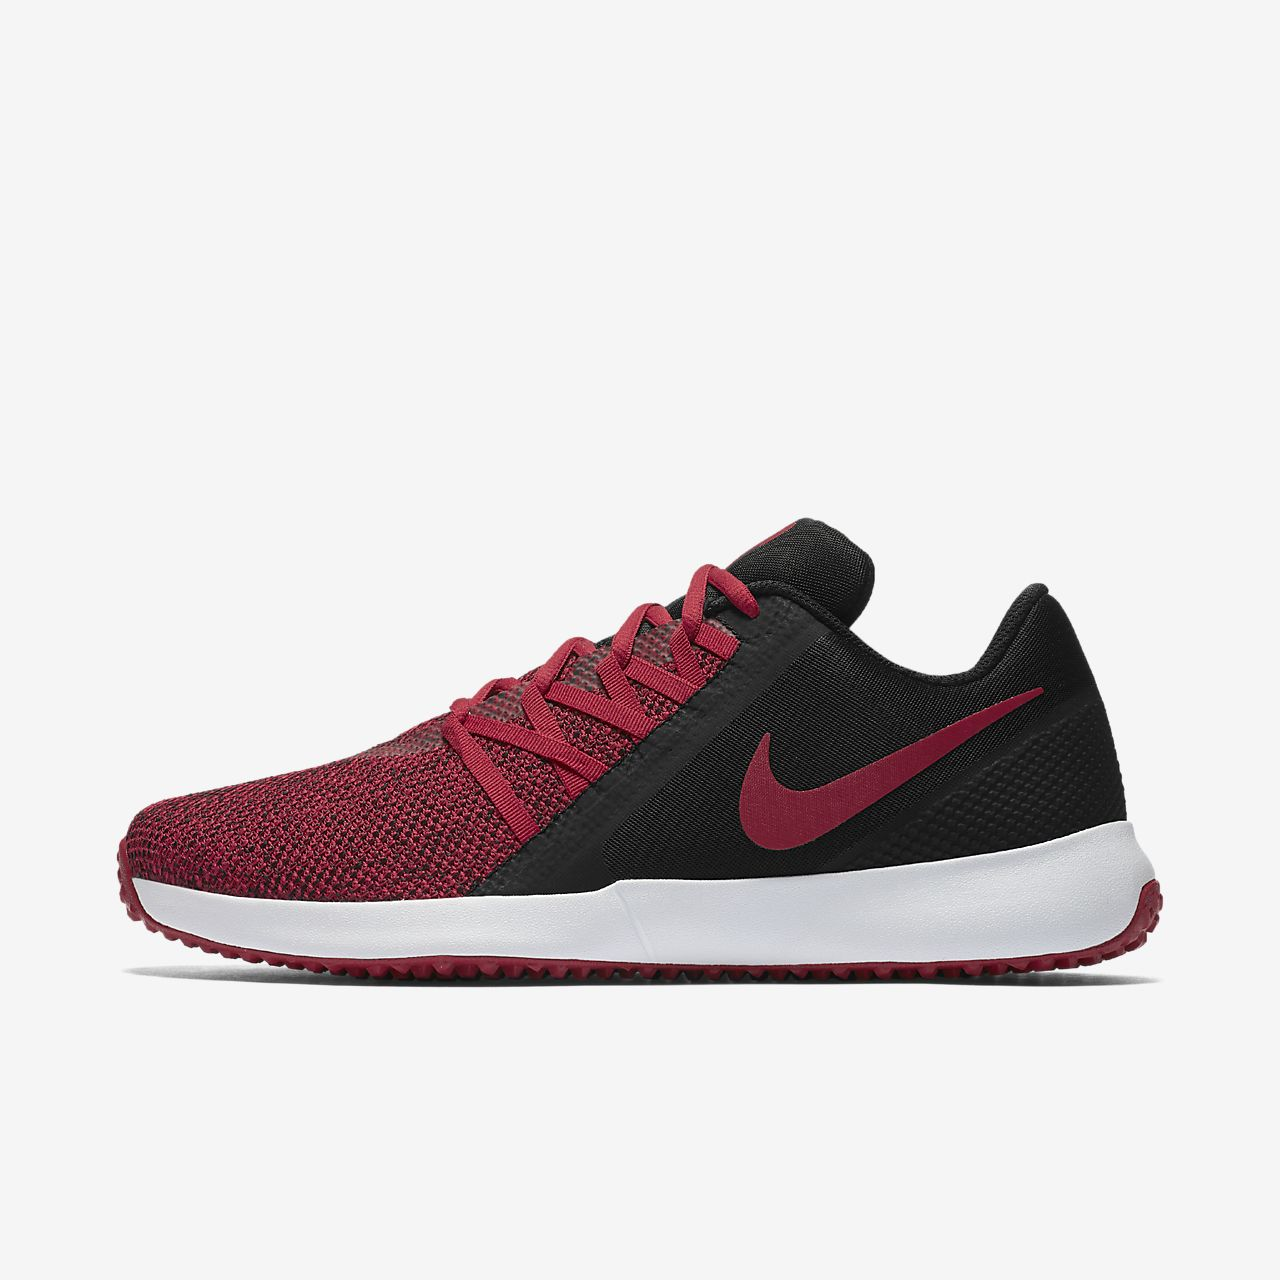 Nike Men's Varsity Complete Trainer Shoes (Black/Gym Red)